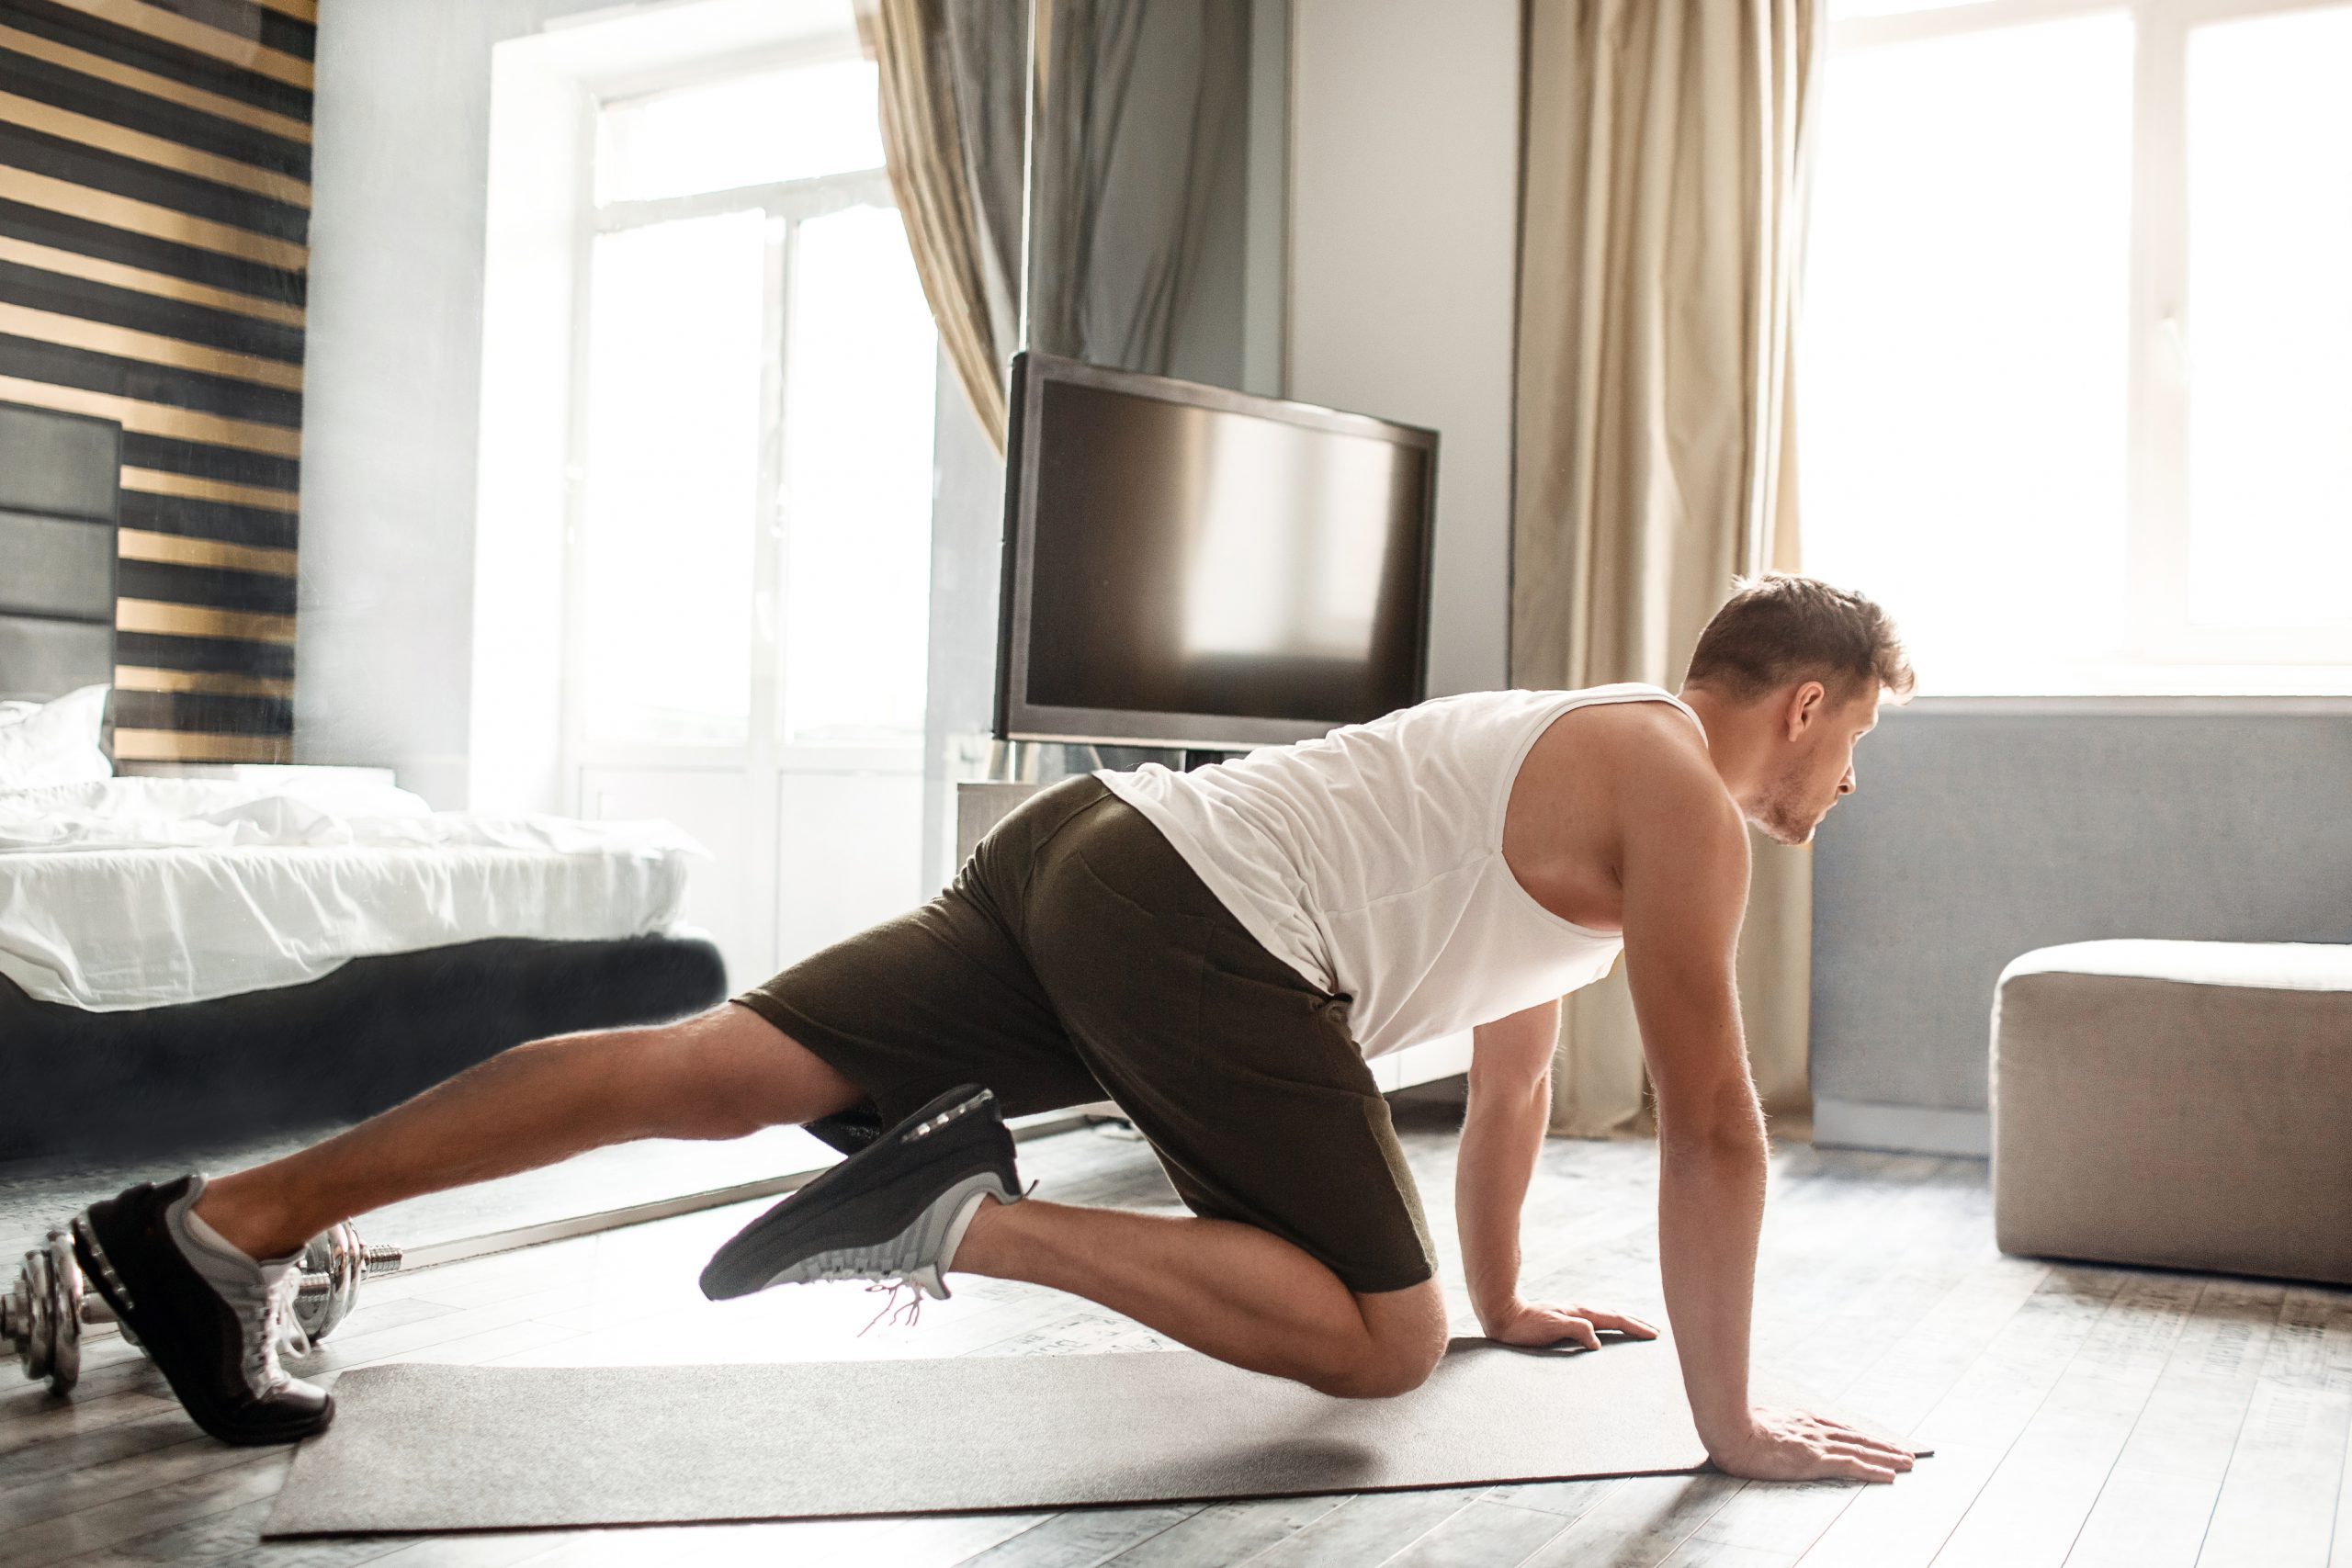 Young well-built man go in for sports in apartment. He stand on hands and move legs. Guy look straight forward. He exercise alone in room.